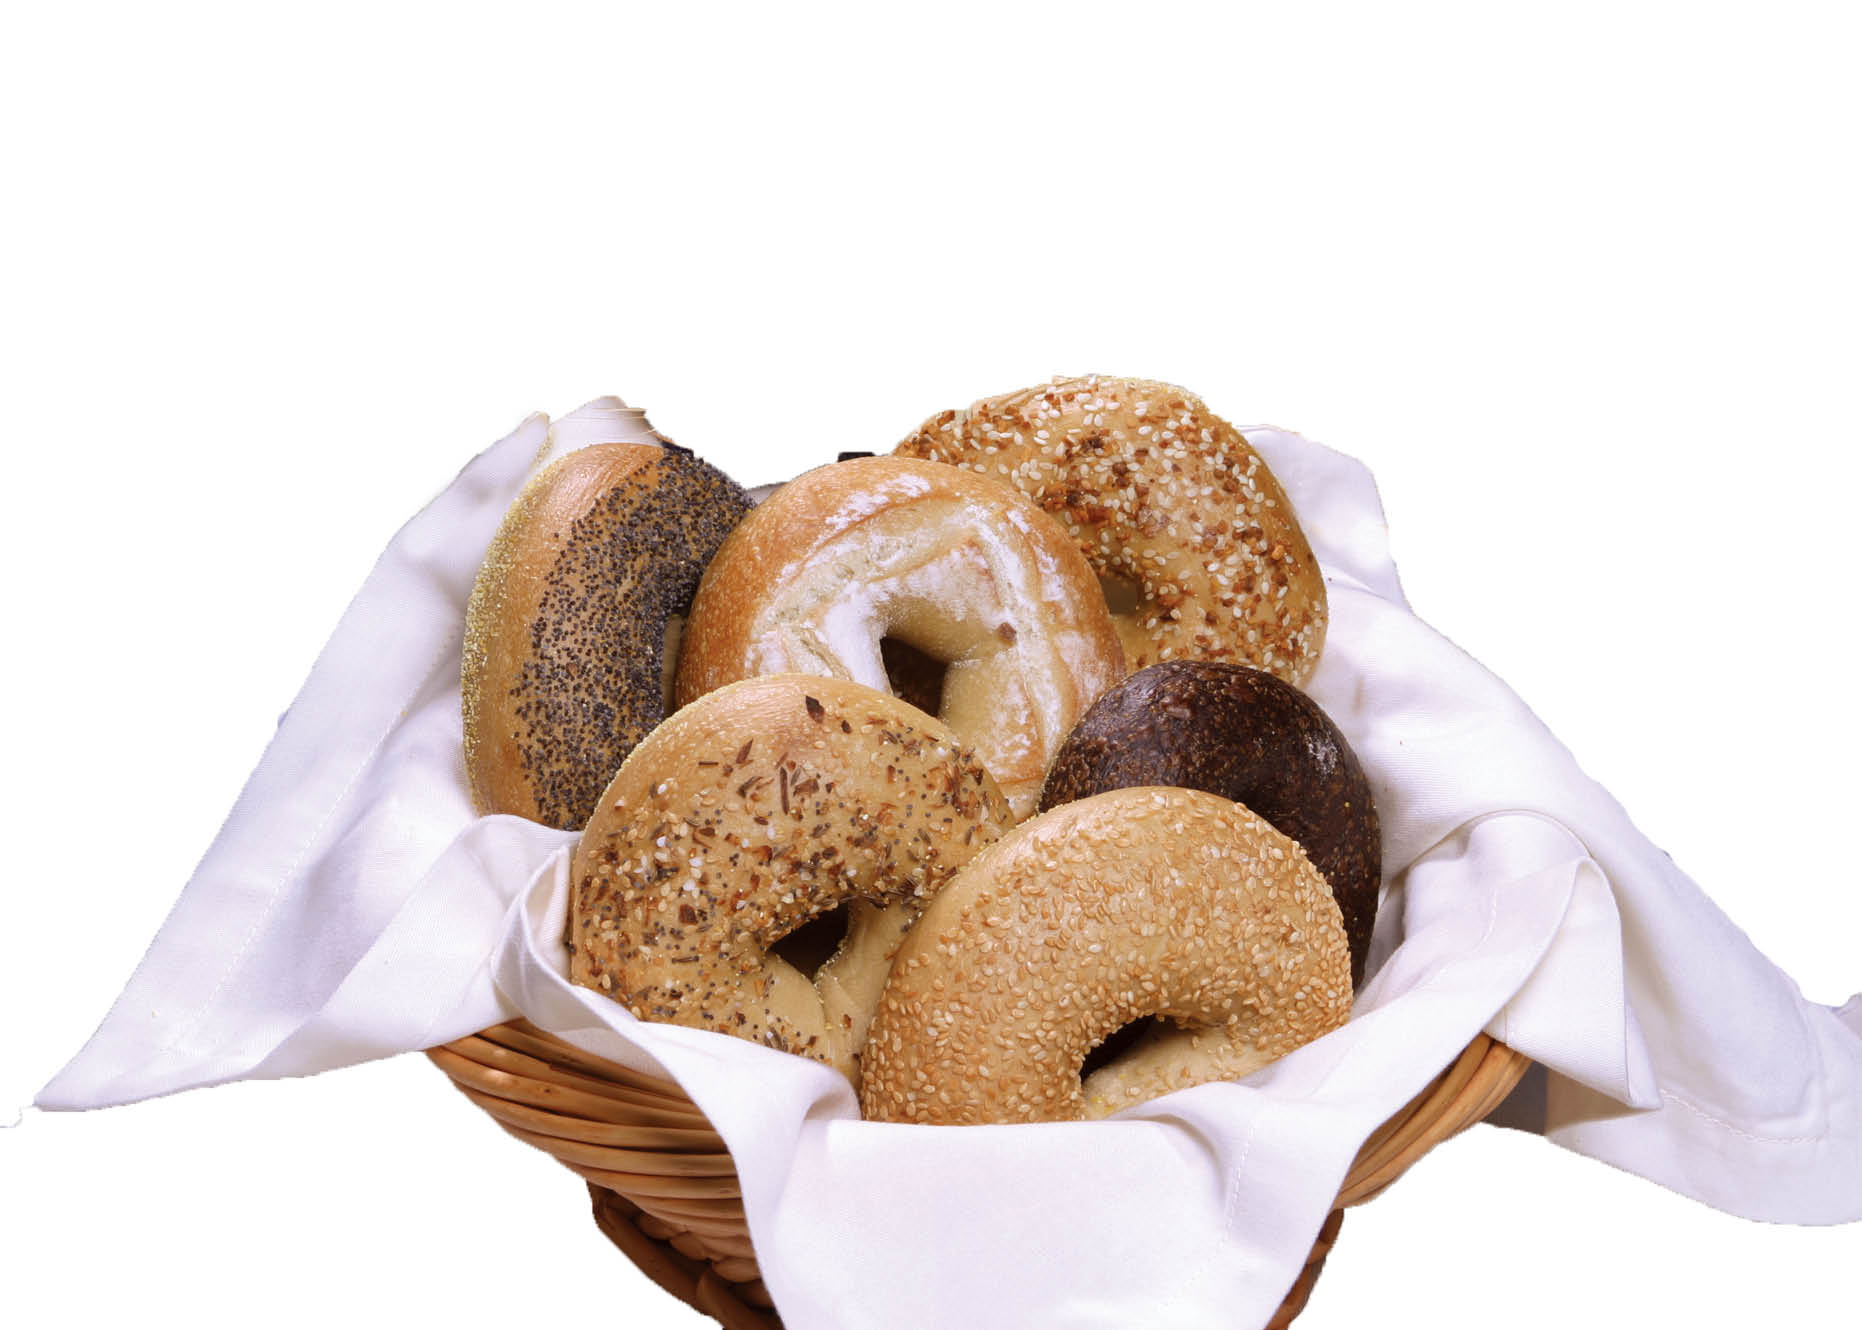 Get bagels and pastries near Port Jefferson Station.